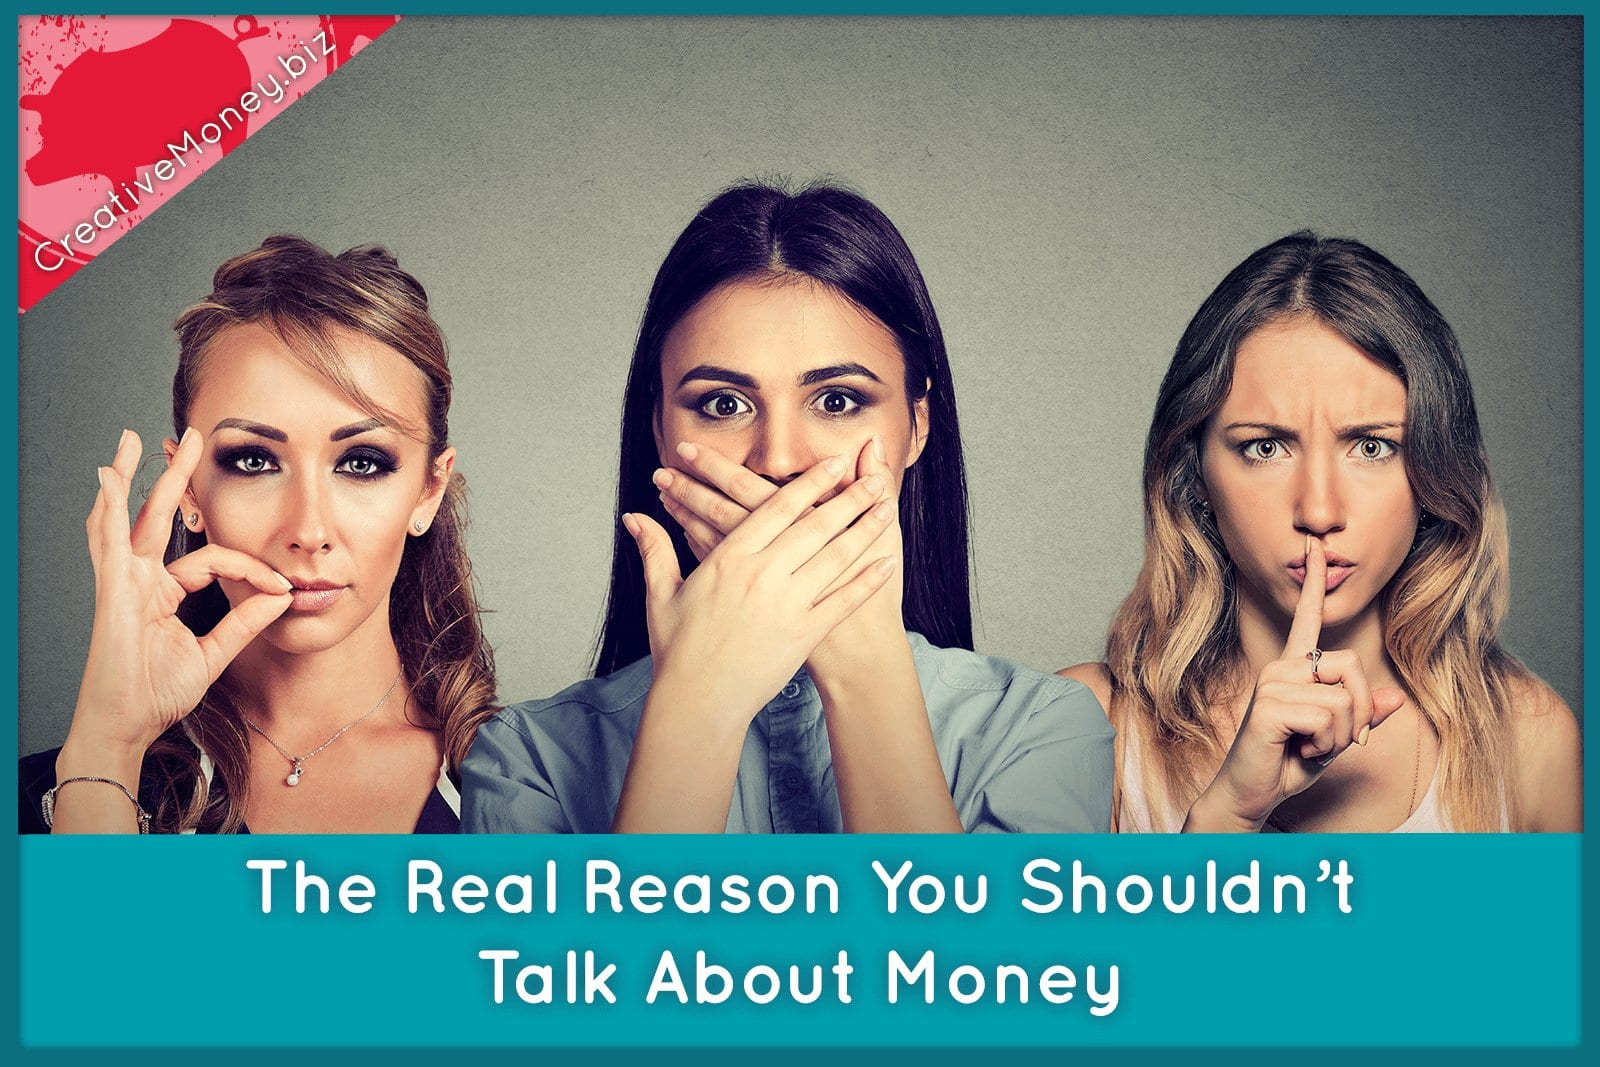 The Real Reason You Shouldn't Talk About Money